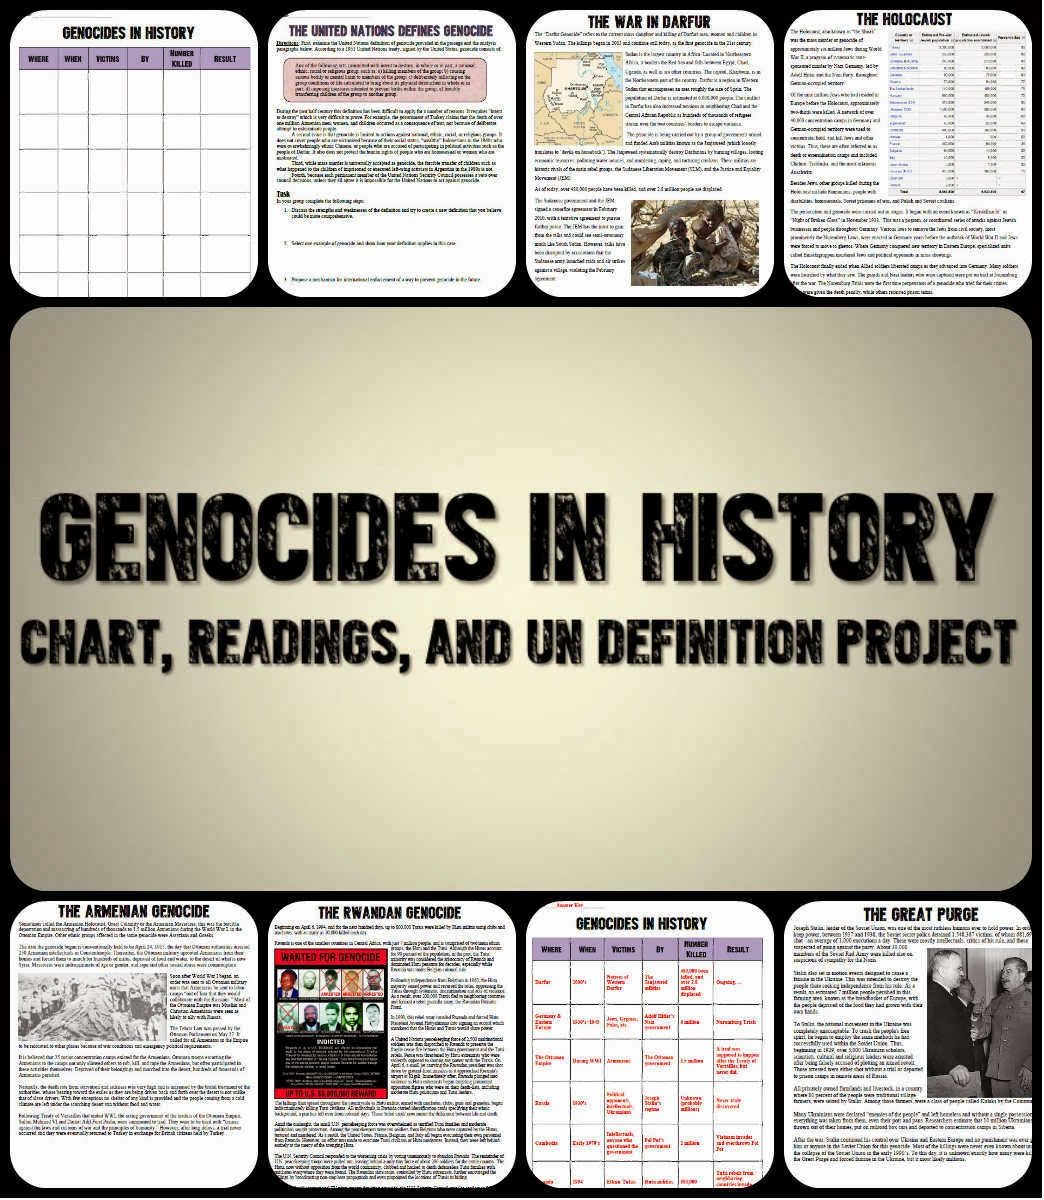 Genocides in history